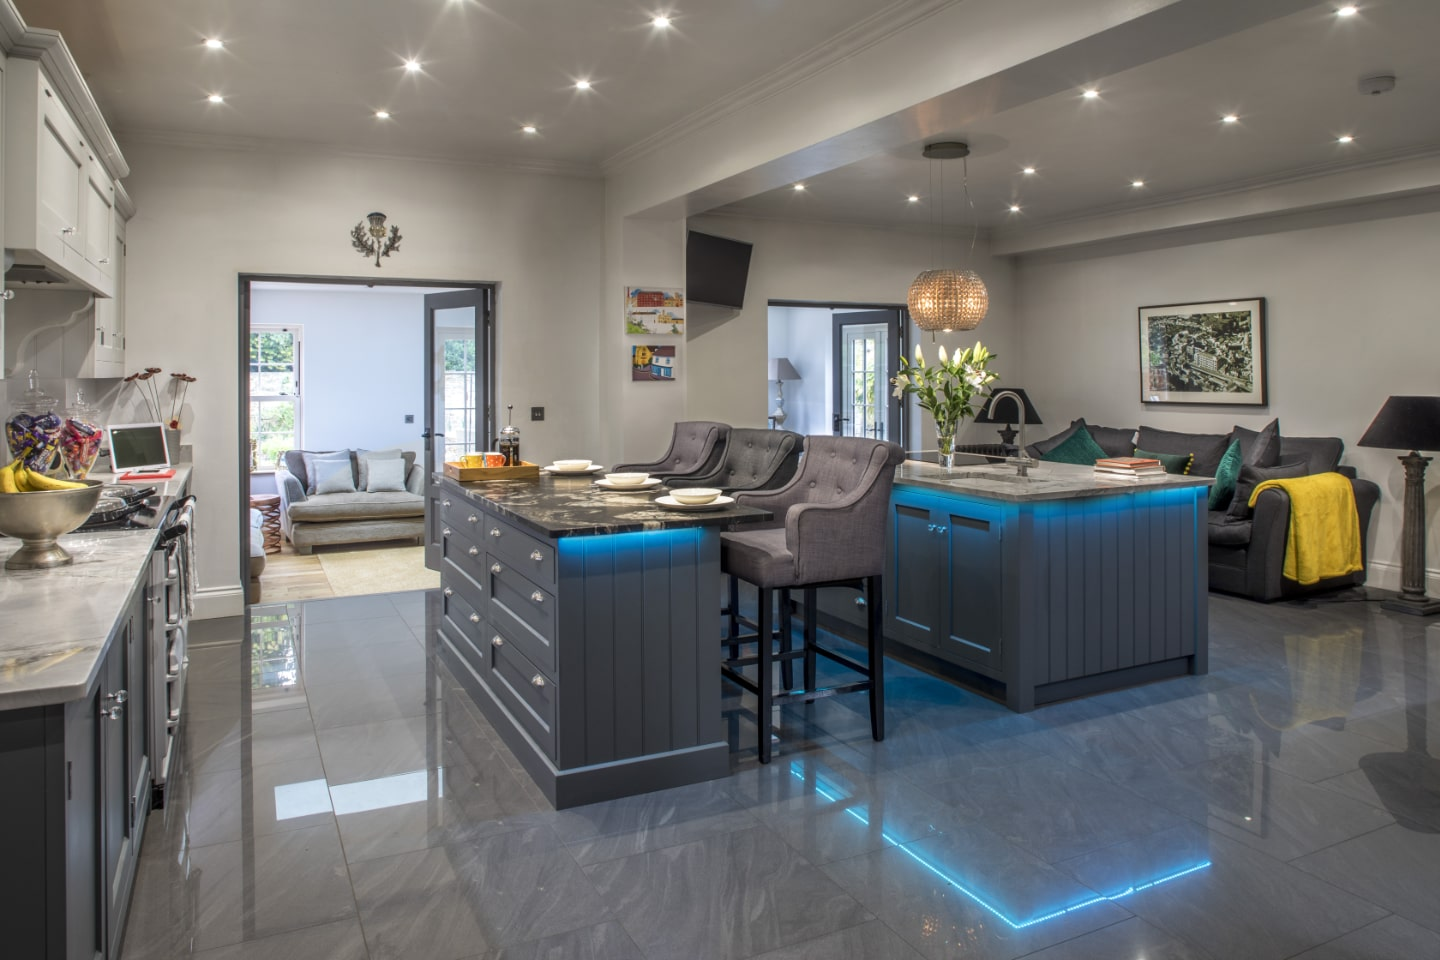 A bespoke kitchen with breakfast bar and turquoise LED lighting underneath.